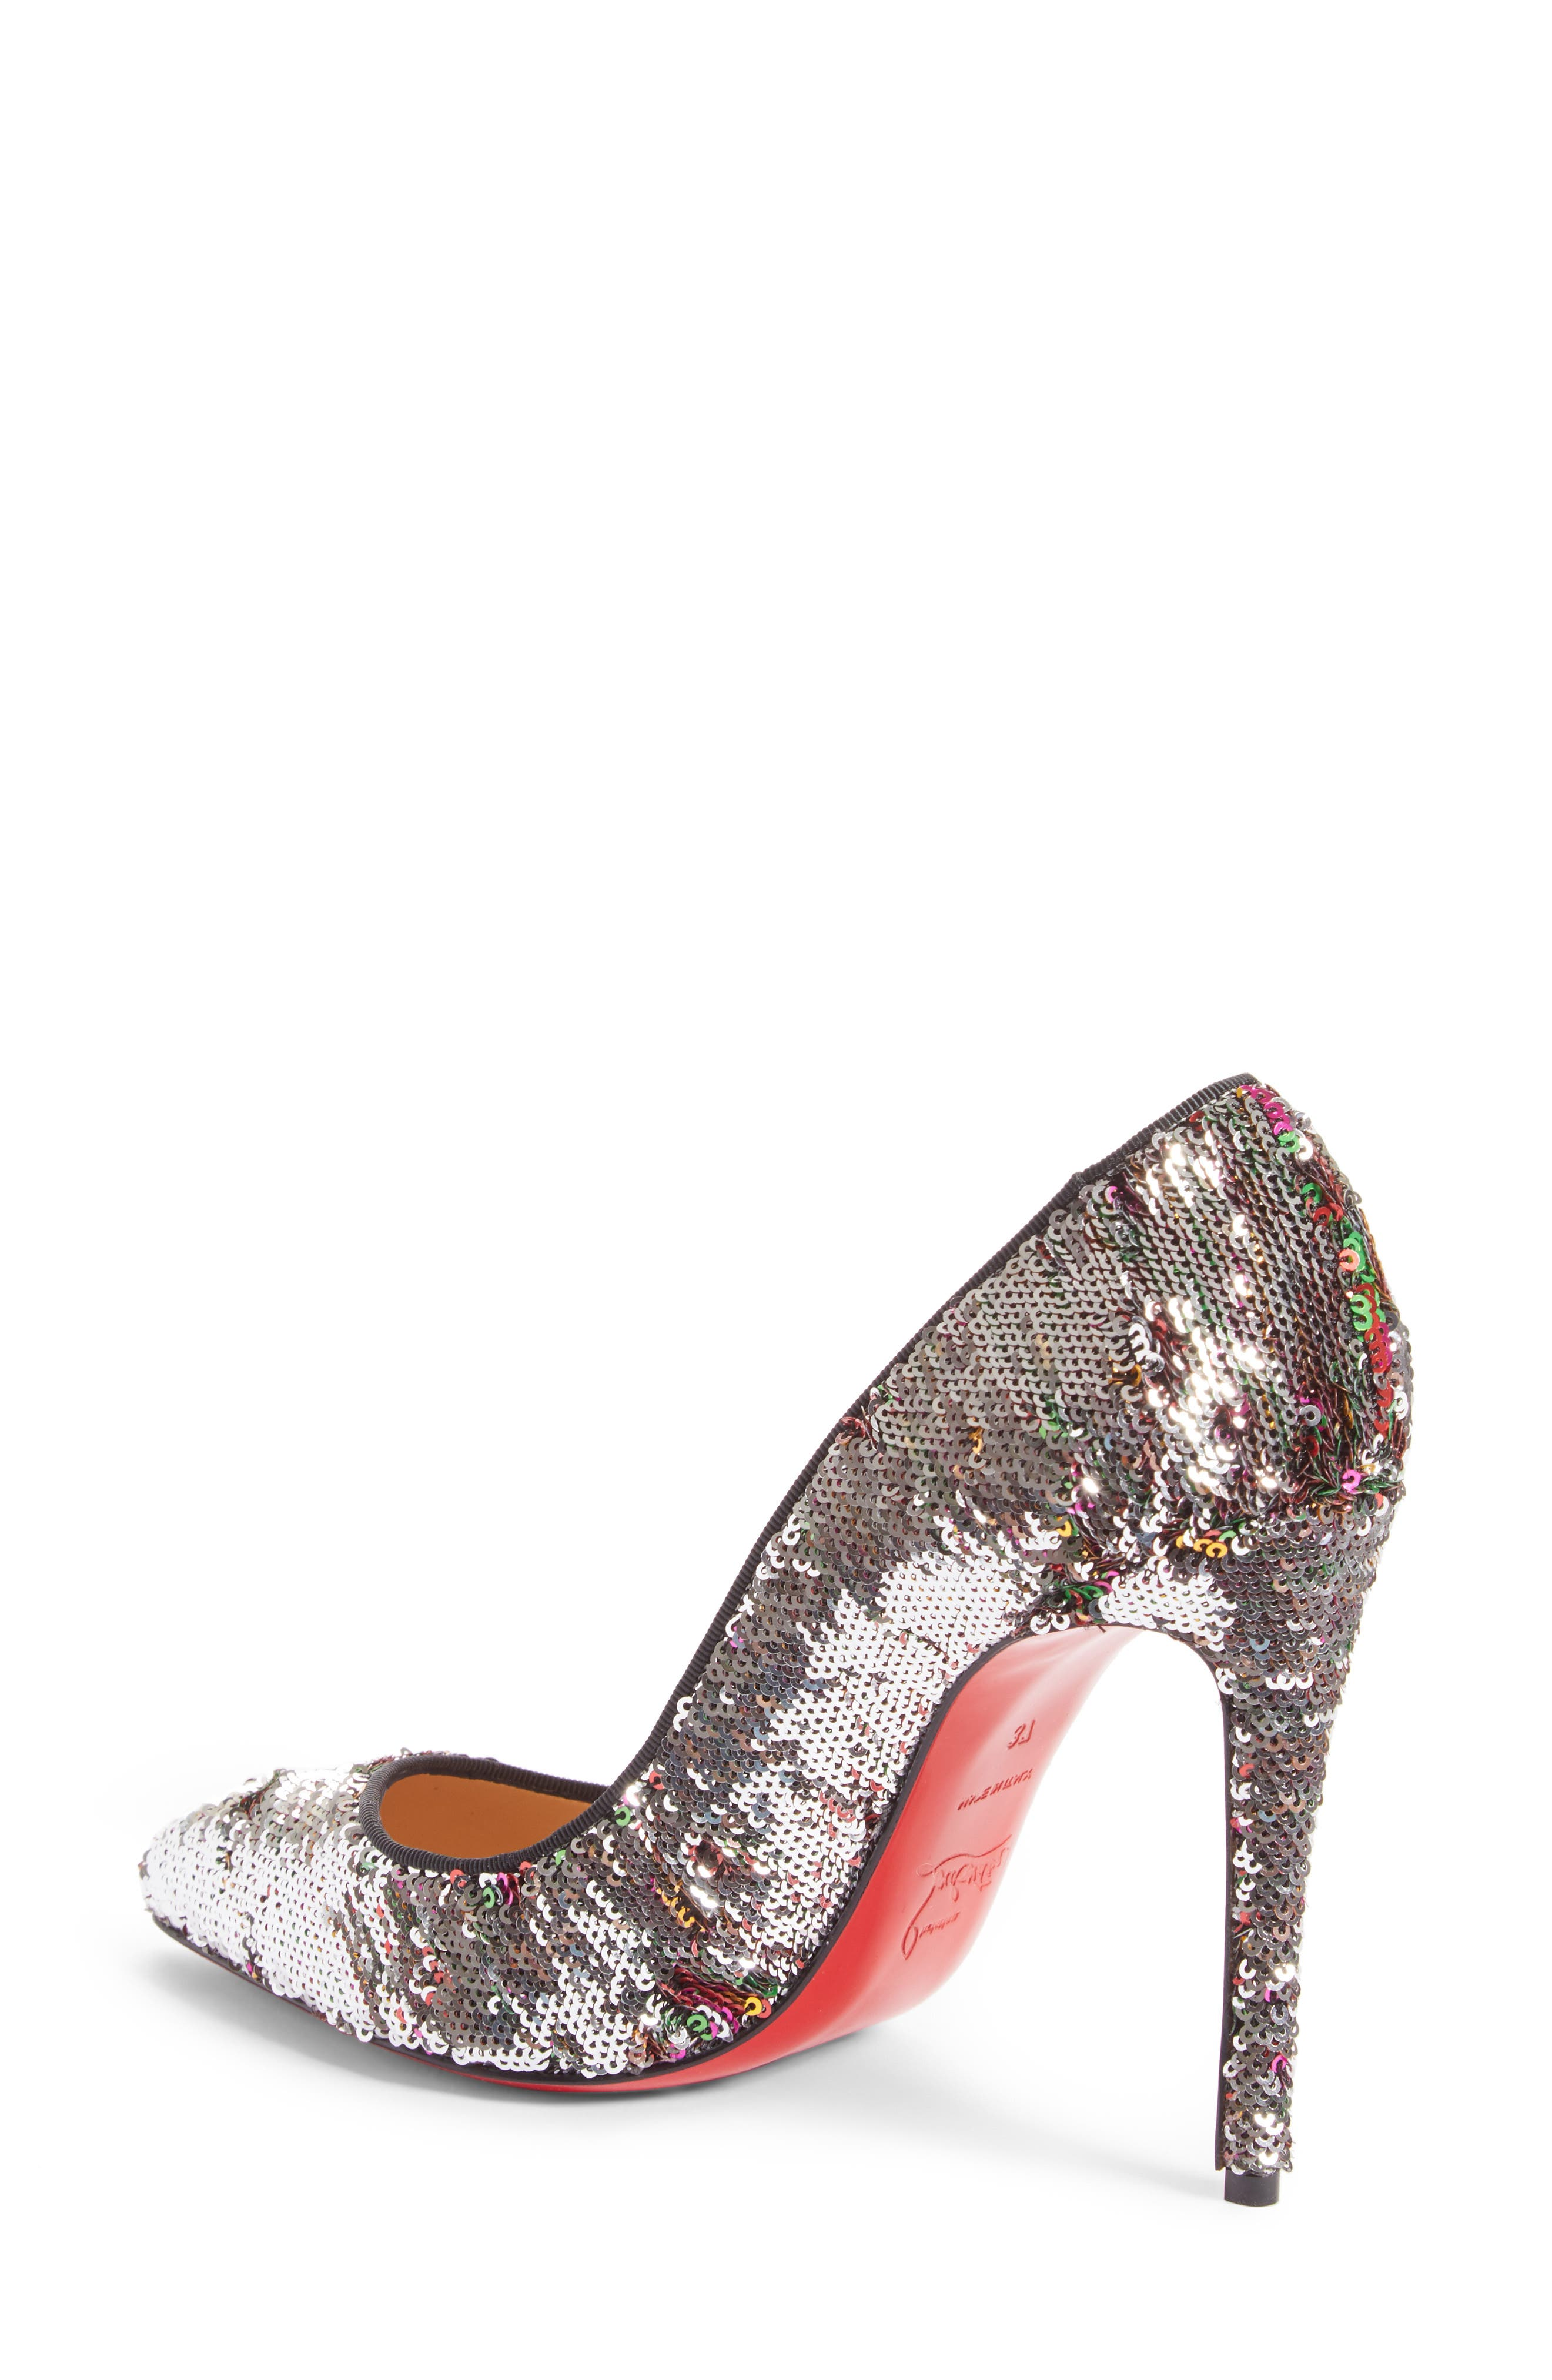 Pigalle Follies Sequin Pointy Toe Pump,                             Alternate thumbnail 2, color,